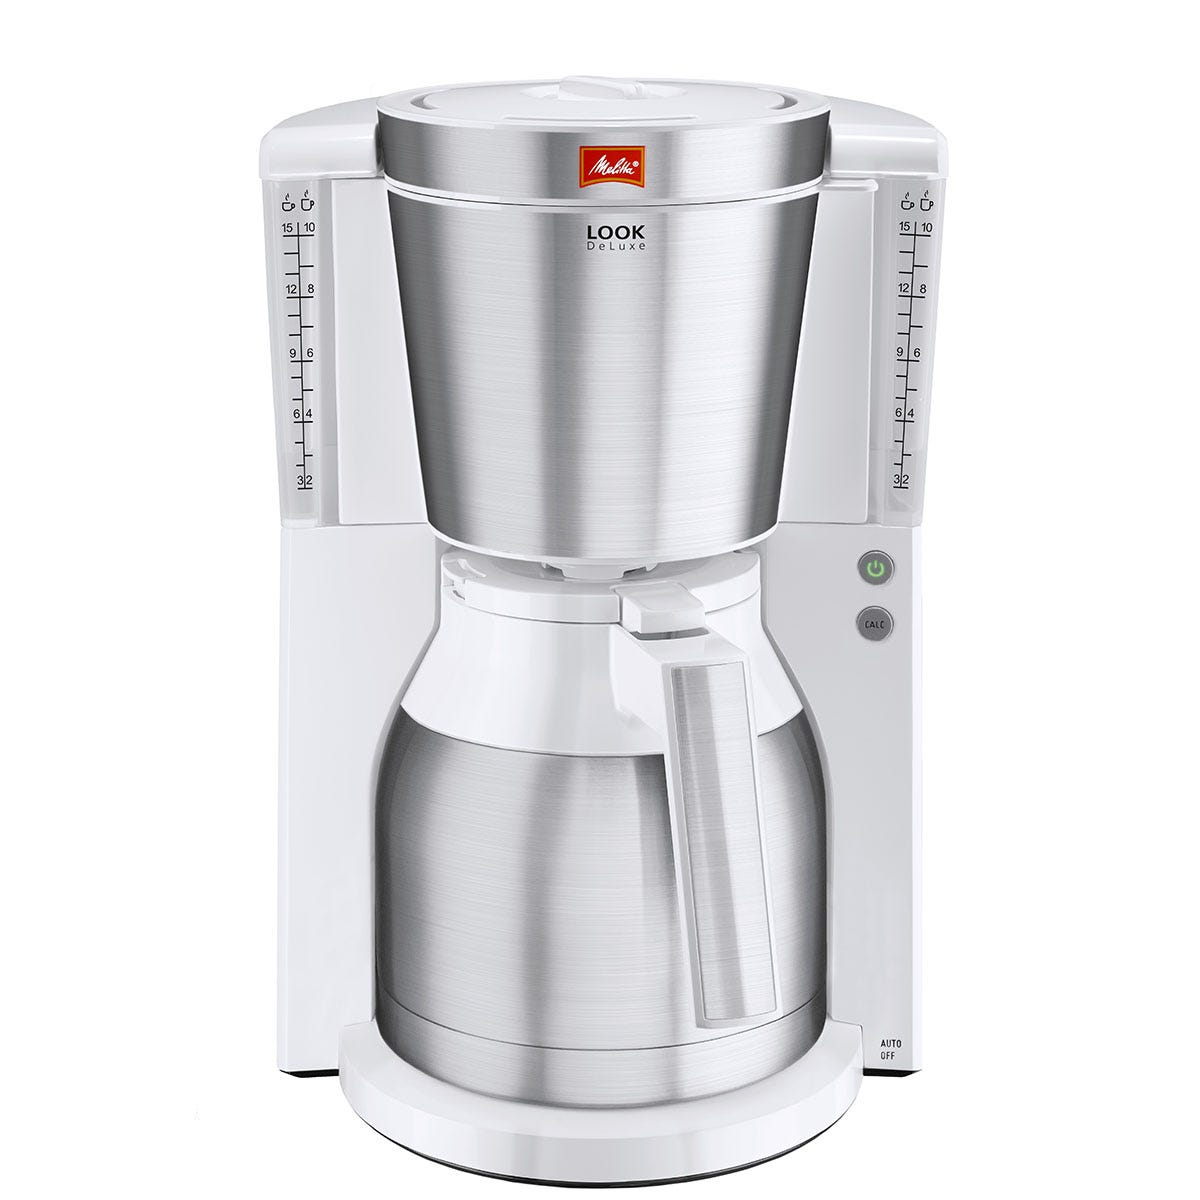 Melitta Look Therm Delux Filter Coffee Machine - Chrome & White